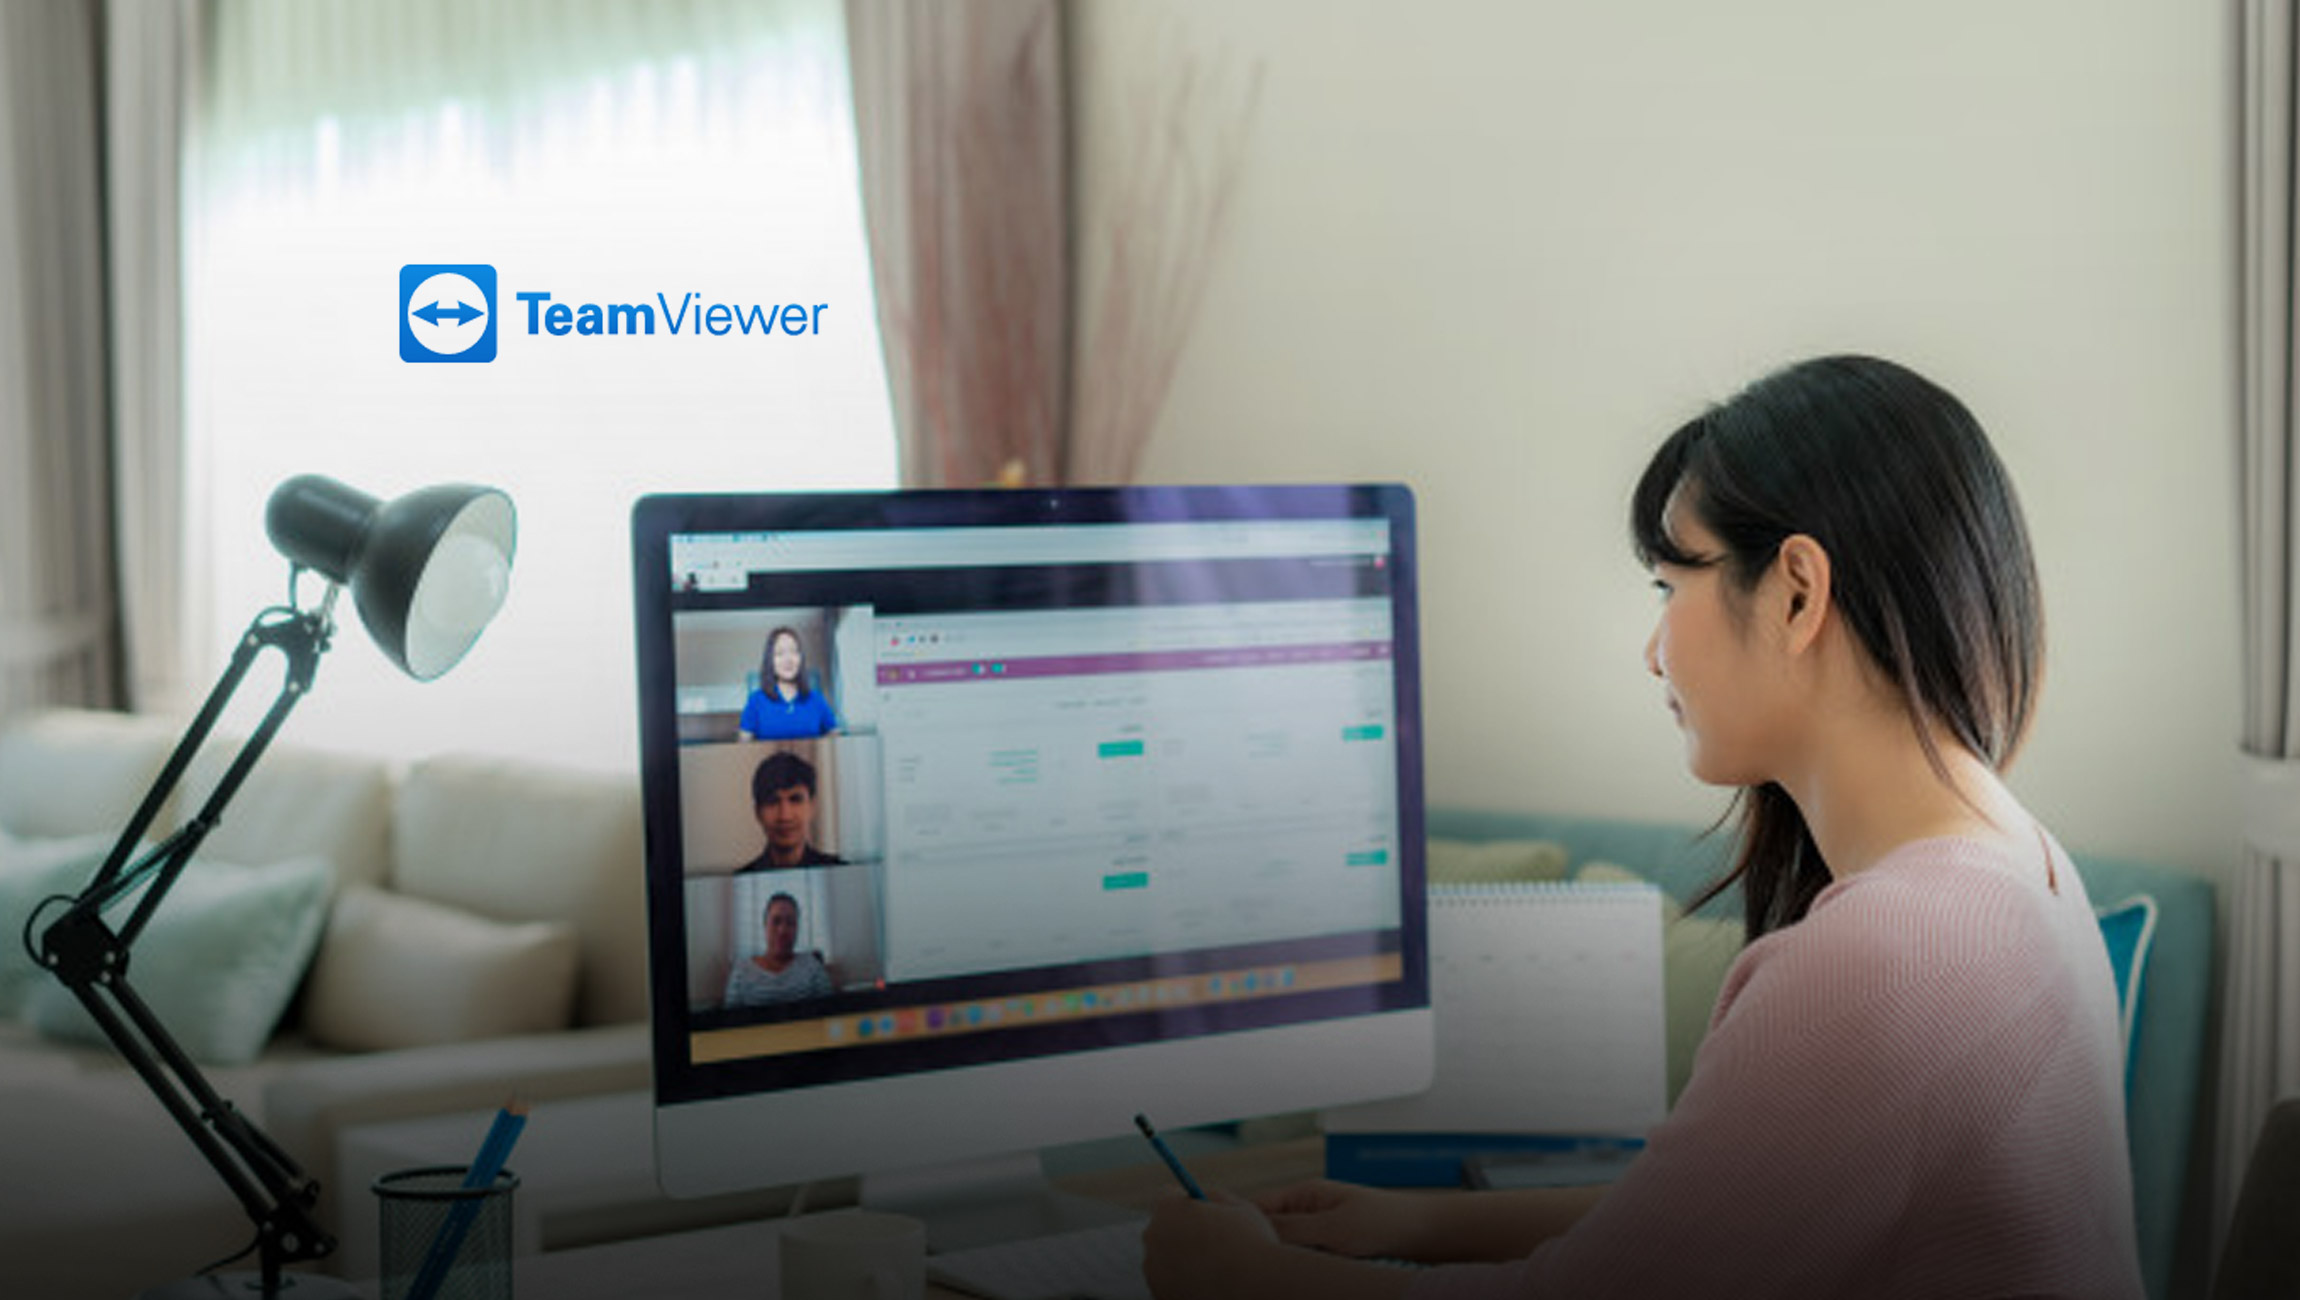 TeamViewer Integrates with EloView for Seamless Remote Control